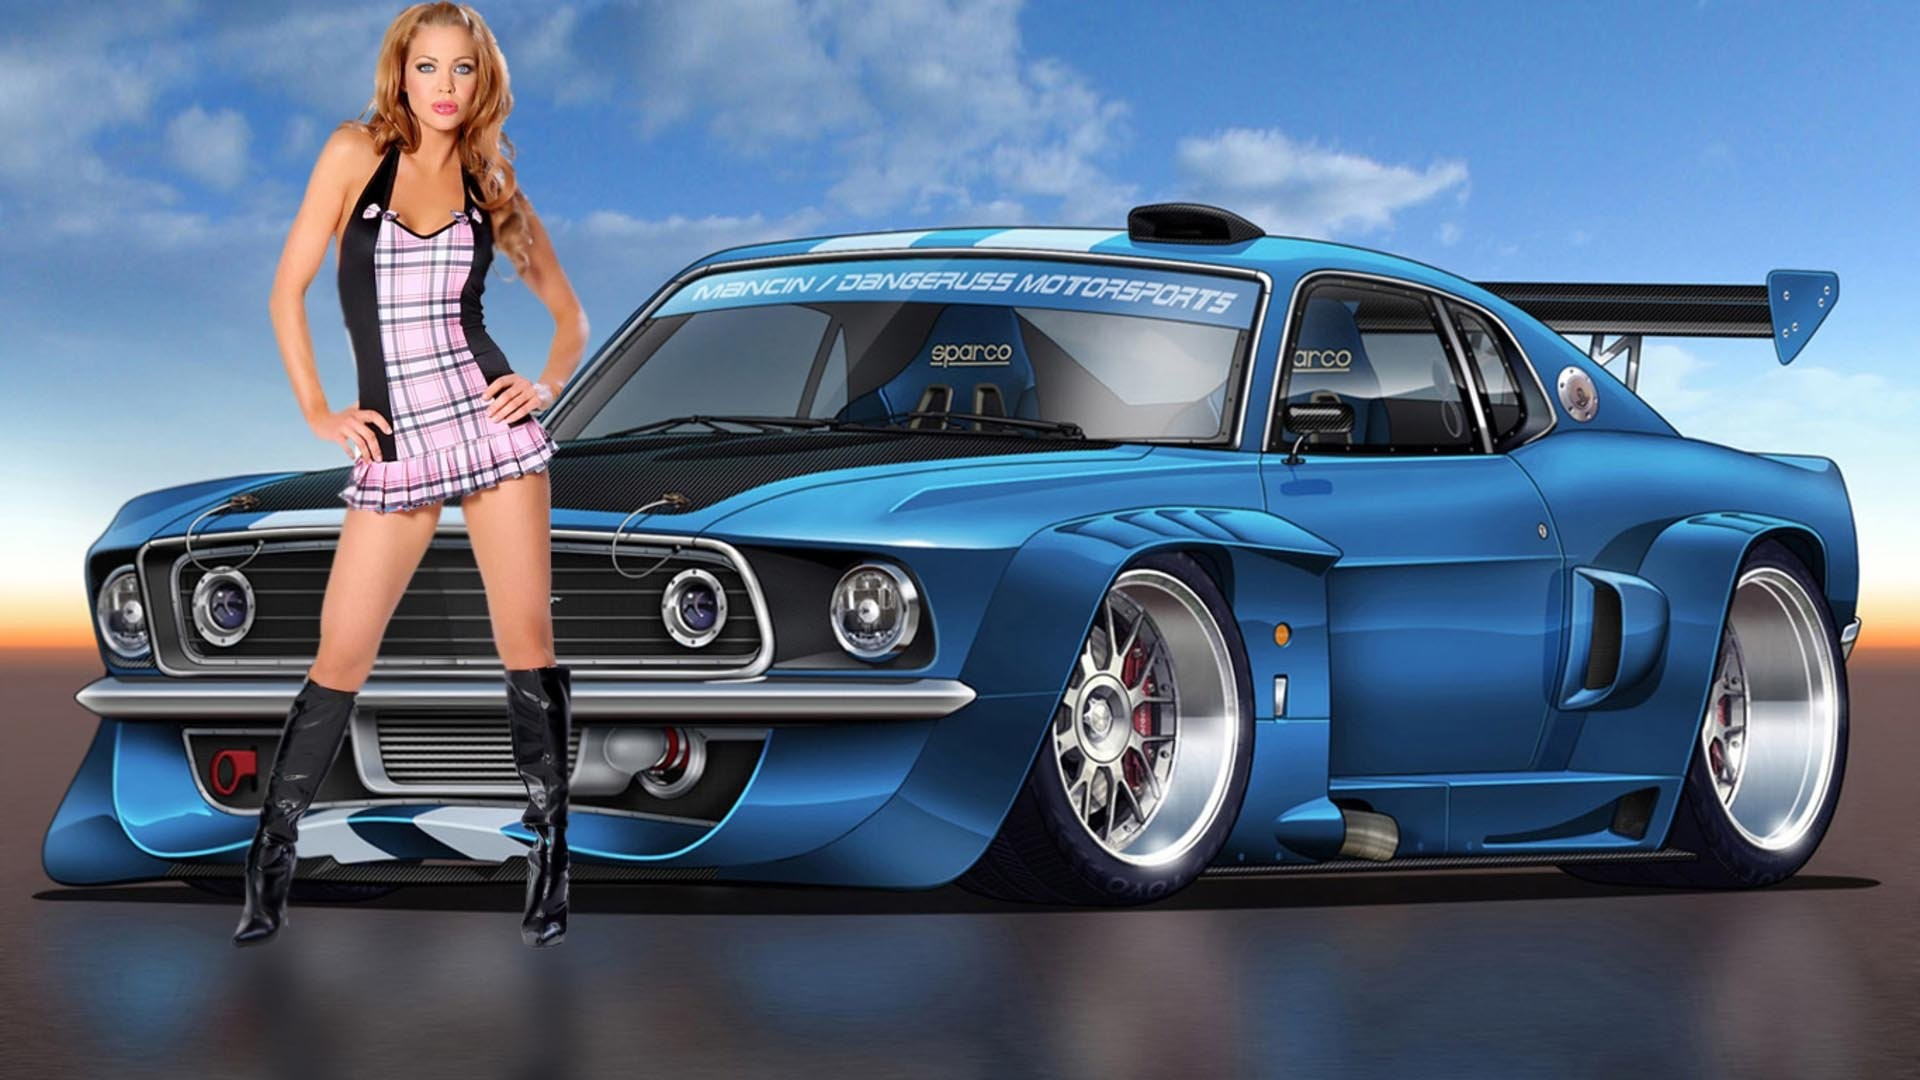 1920x1080 Hot Cars Wallpapers With Girls Wallpaper